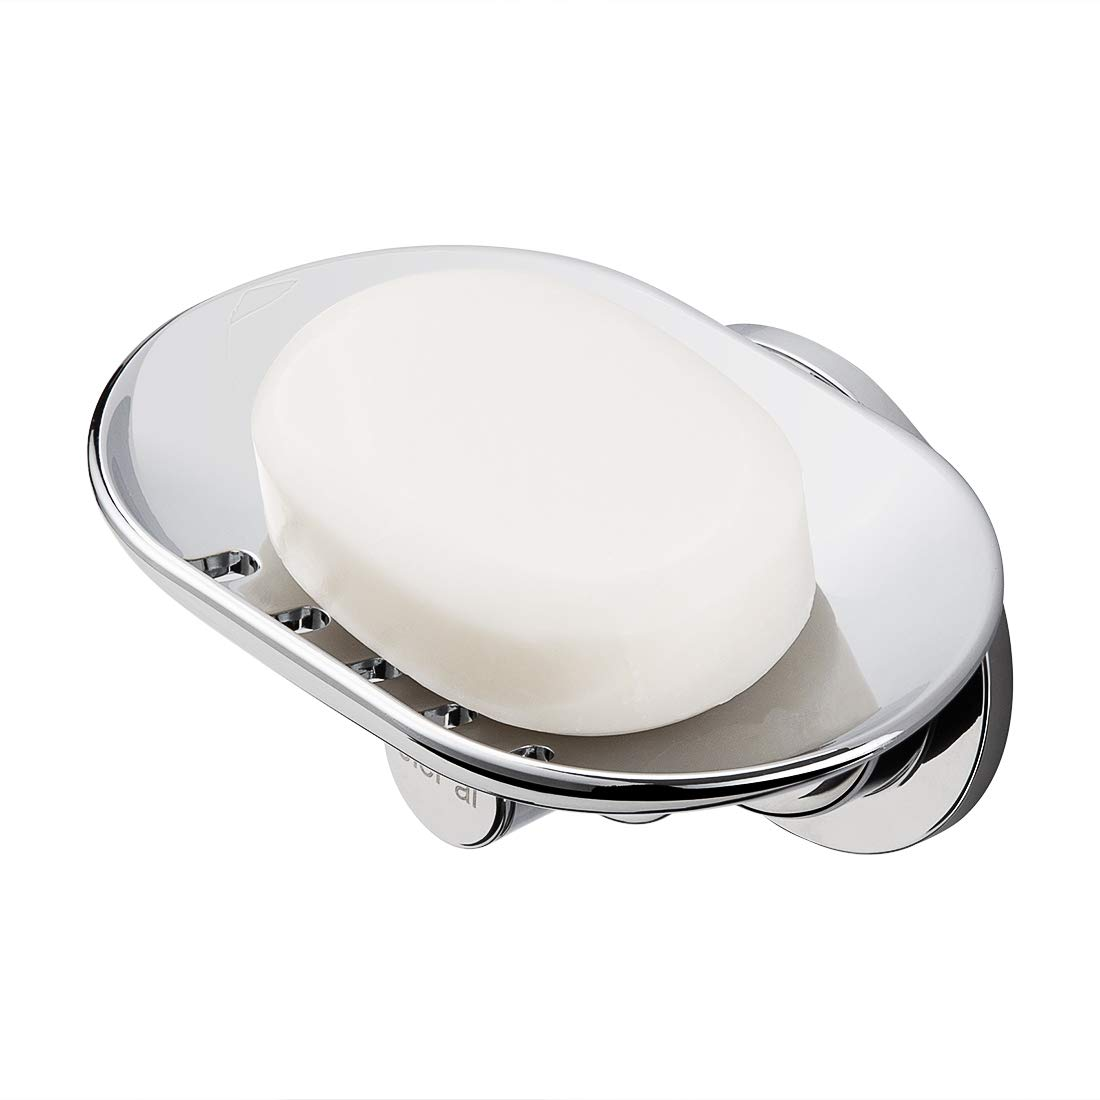 JiePai Suction Soap Dish,Super Powerful Vacuum Suction Shower Soap Holder with Hooks,Elegant Suction Cup Soap Holder for Bathroom & Kitchen,Chrome